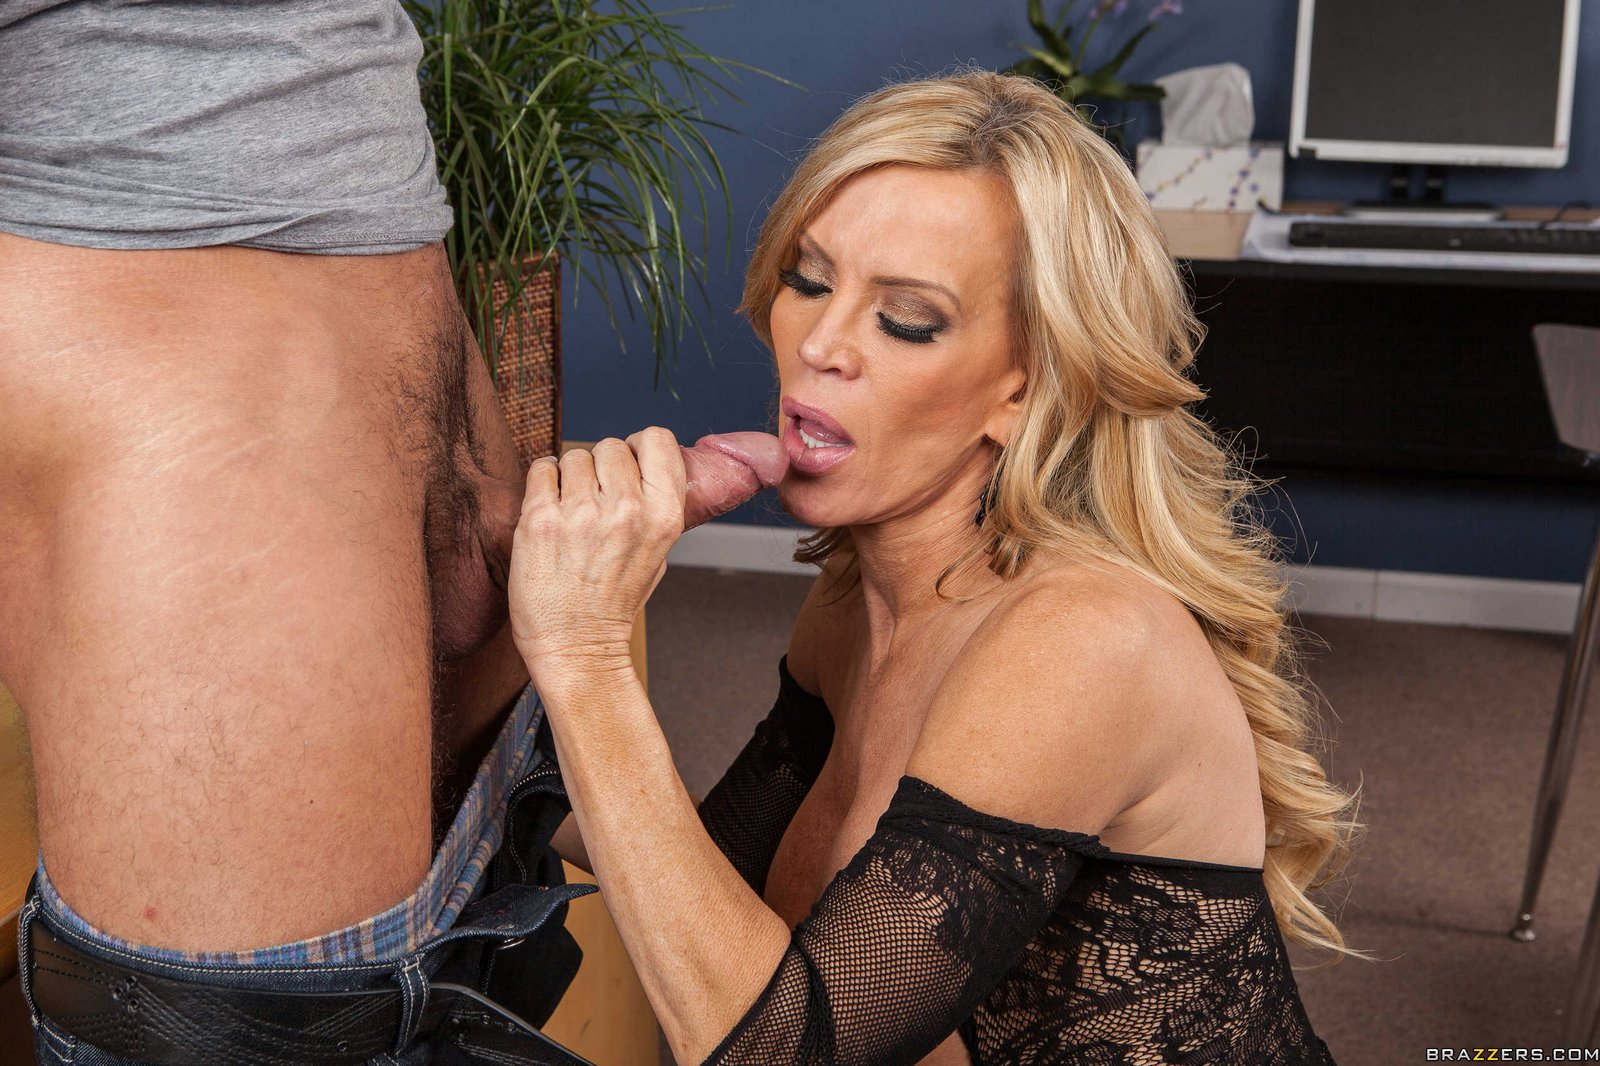 naughty teacher amber lynn in sexy fishnet seducing her student - my